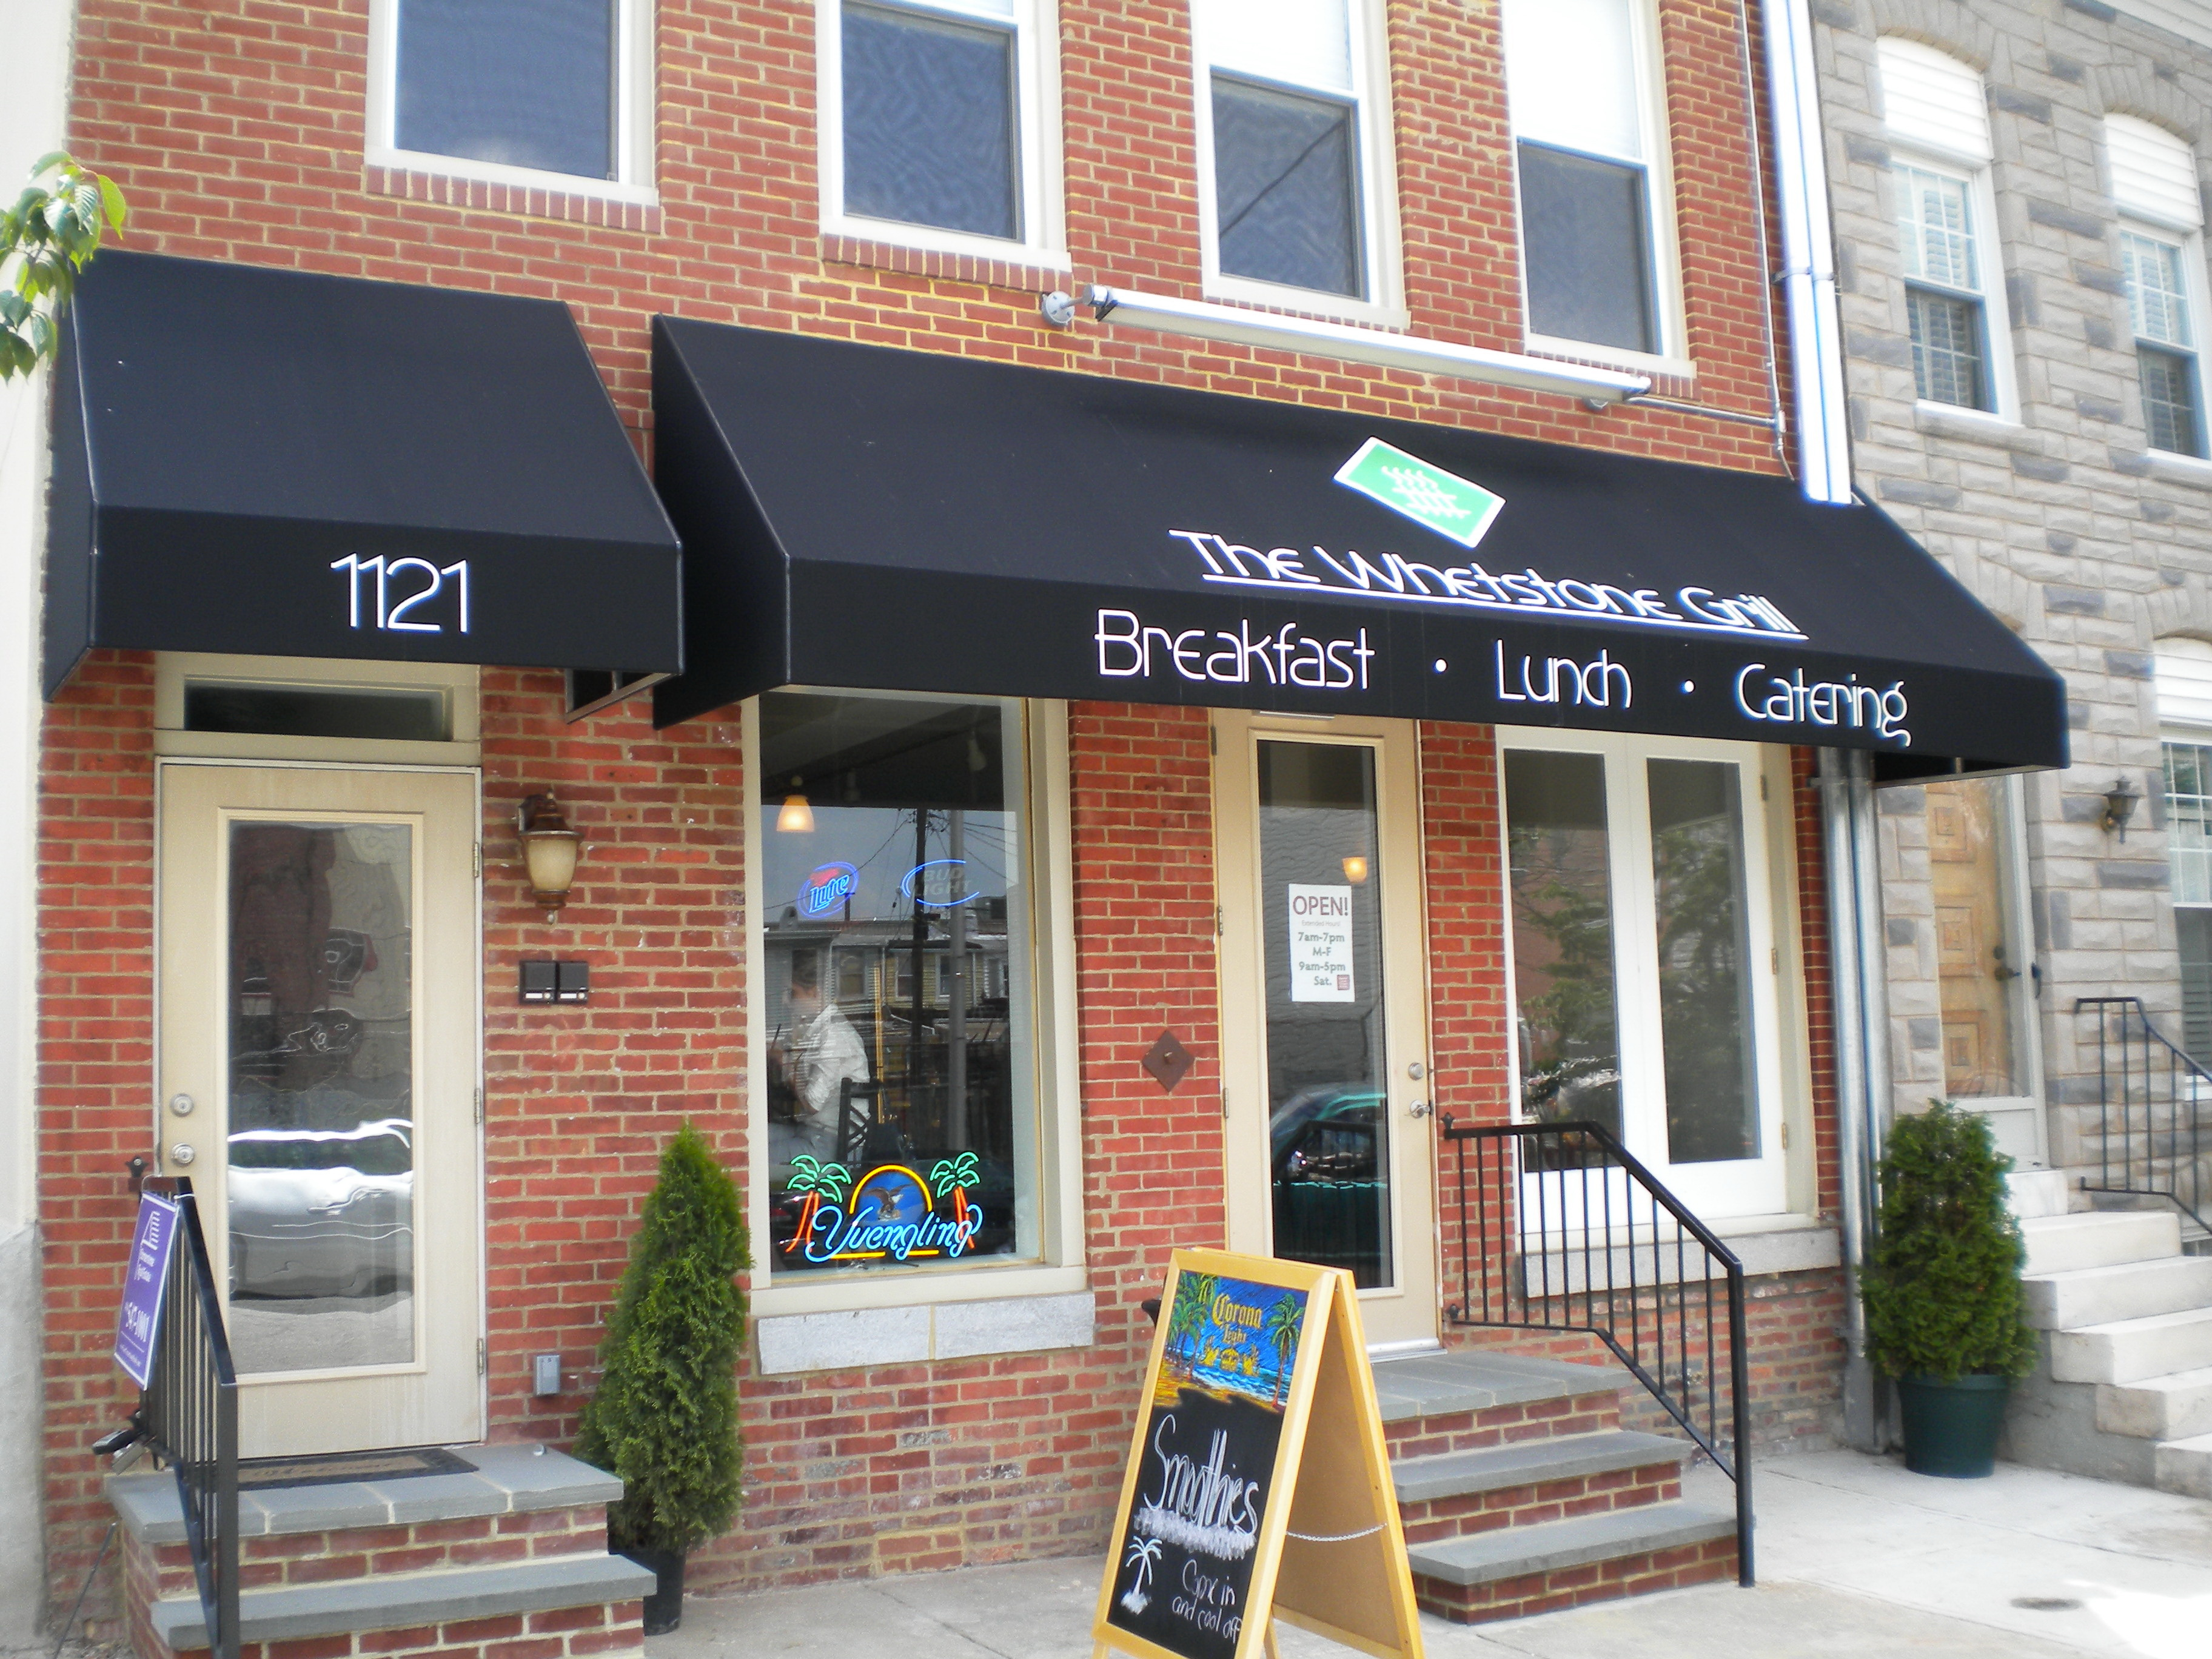 Small Business Awning A storefront awning is the best way to advertise your business Call A. Hoffman Awning in Baltimore     410-685-5687